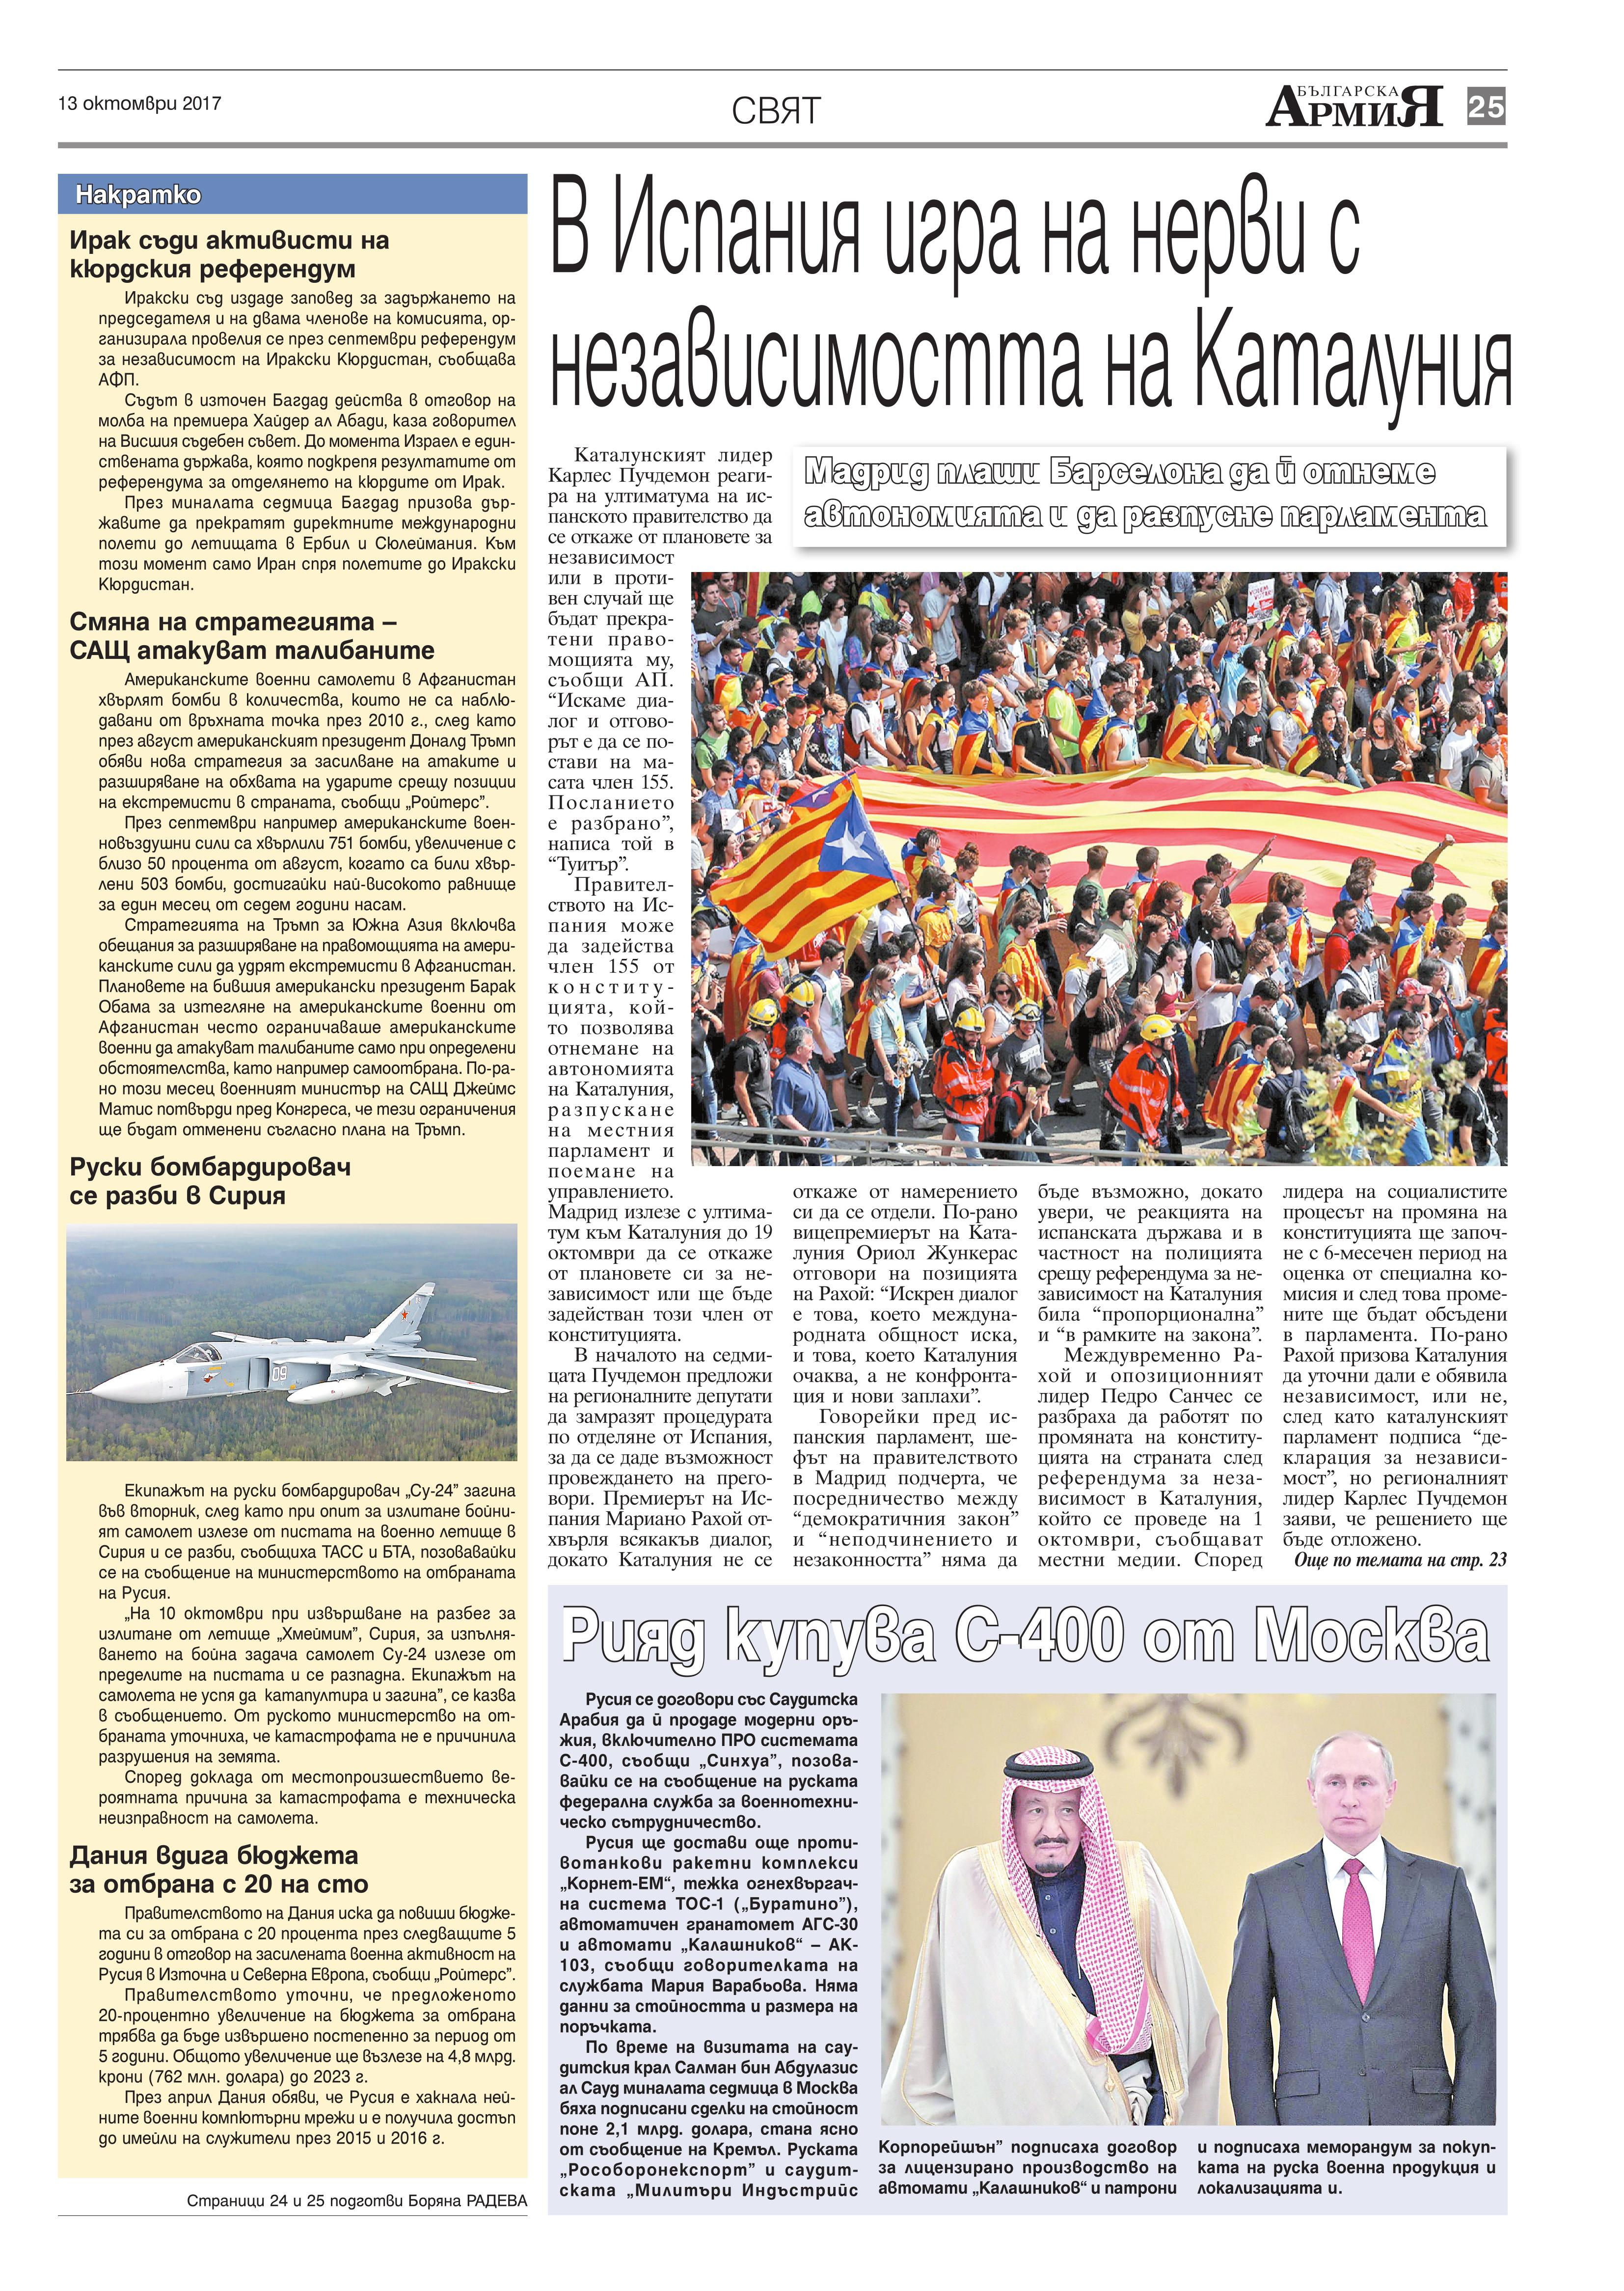 http://armymedia.bg/wp-content/uploads/2015/06/25.page1_-29.jpg